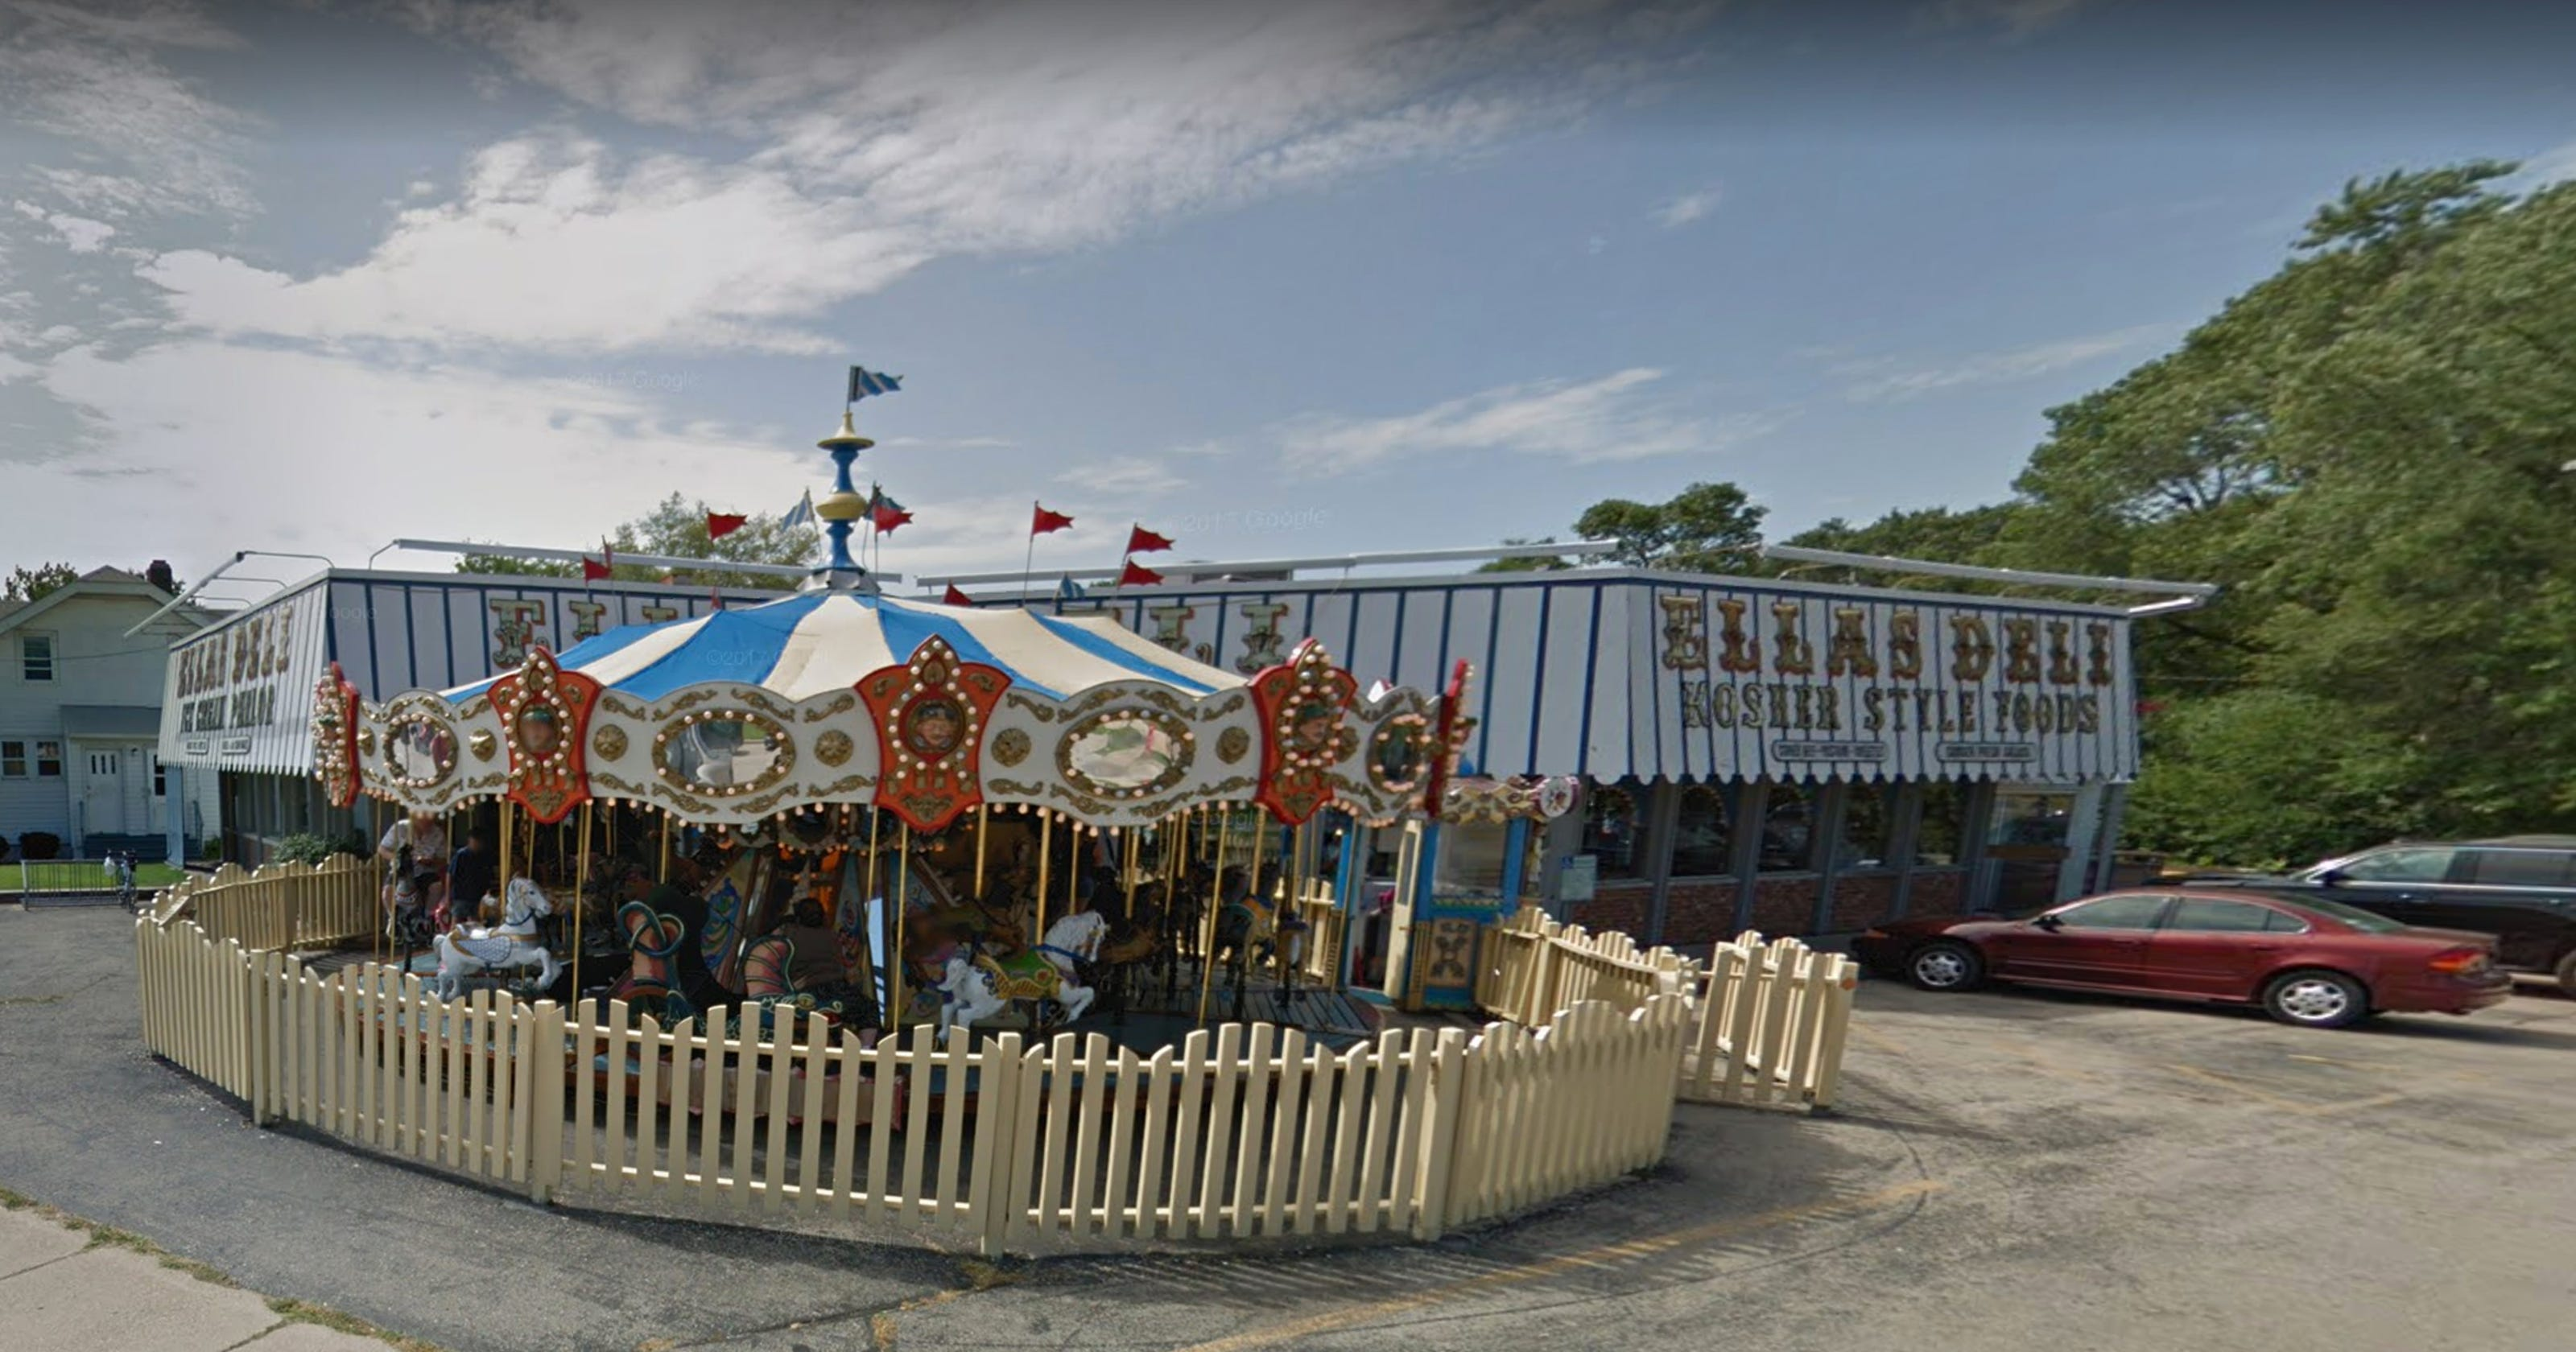 Epic bought the carousel that was in front of Ella's Deli in Madison